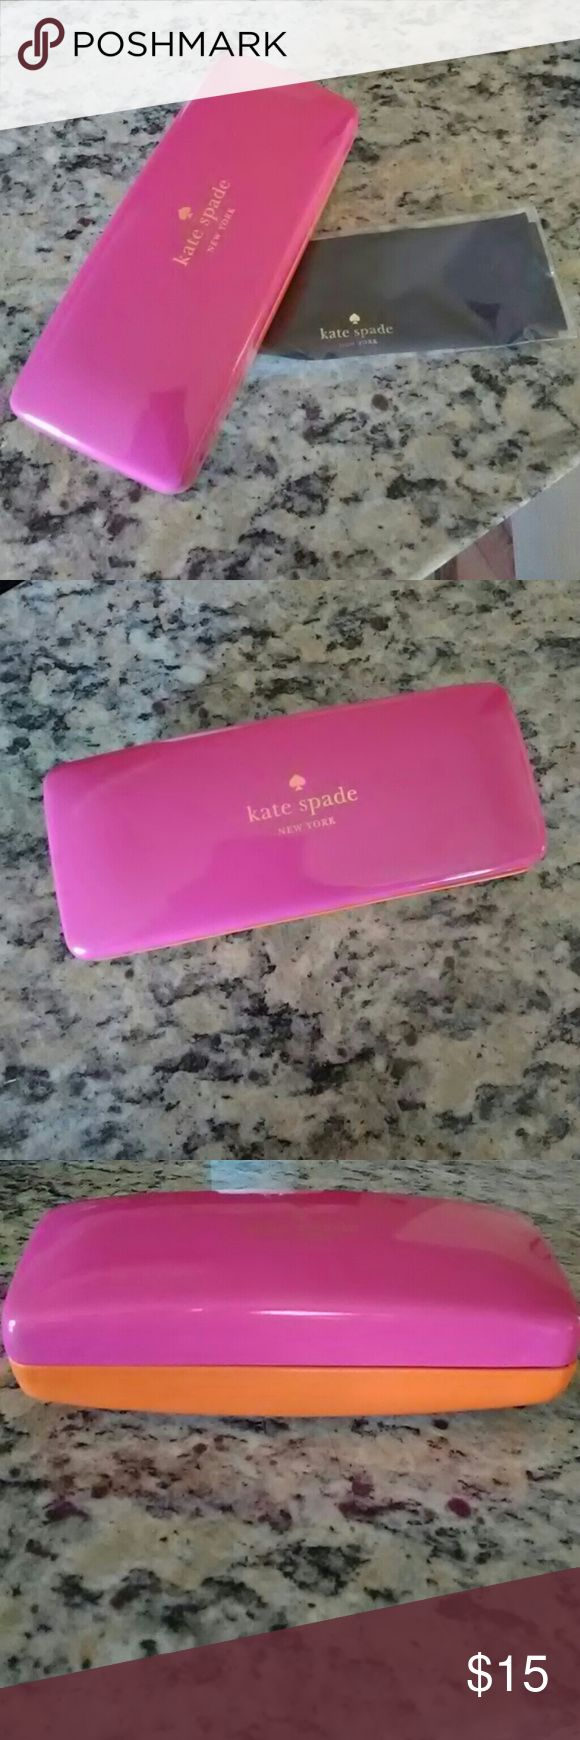 Kate Spade sunglass case Pink/orange Kate Spade sunglass case and cleaning cloth. New. Deeper case than my other listing, this is made for a sunglass frame. kate spade Accessories Glasses